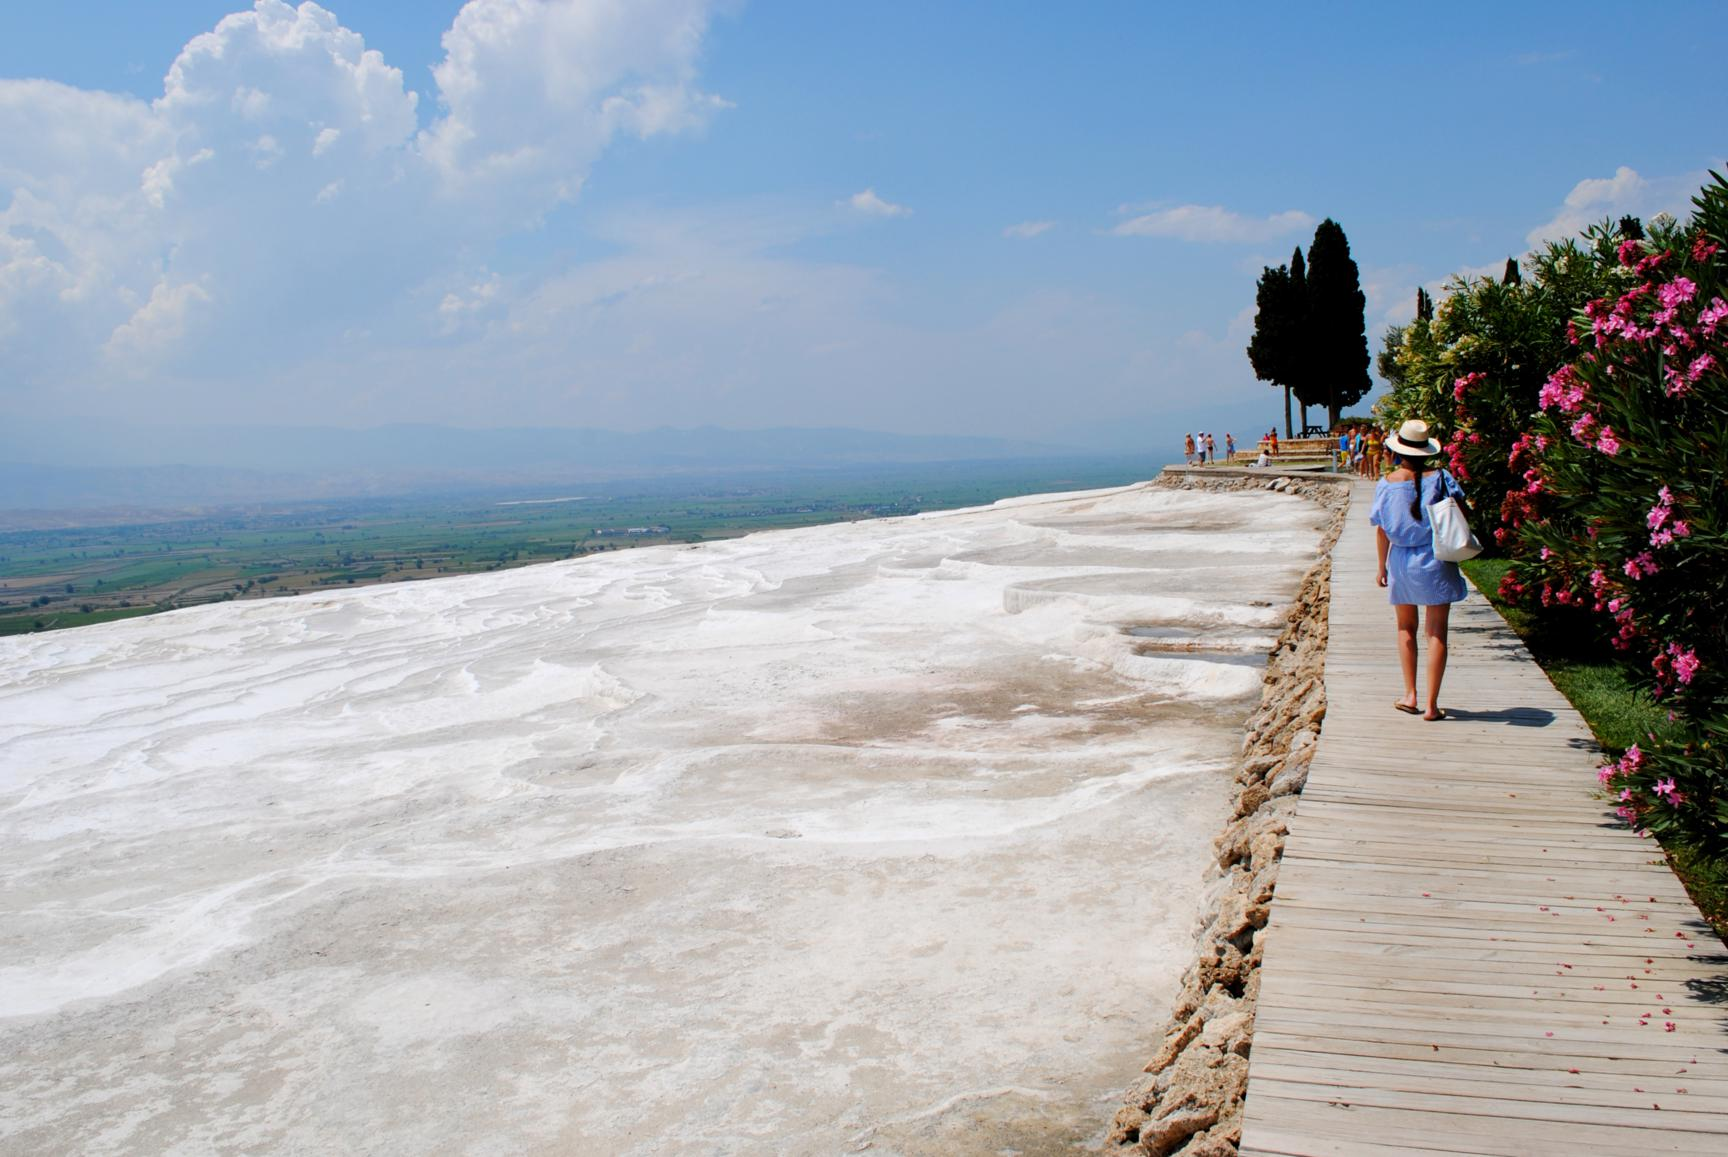 pamukkale-travertinos-1